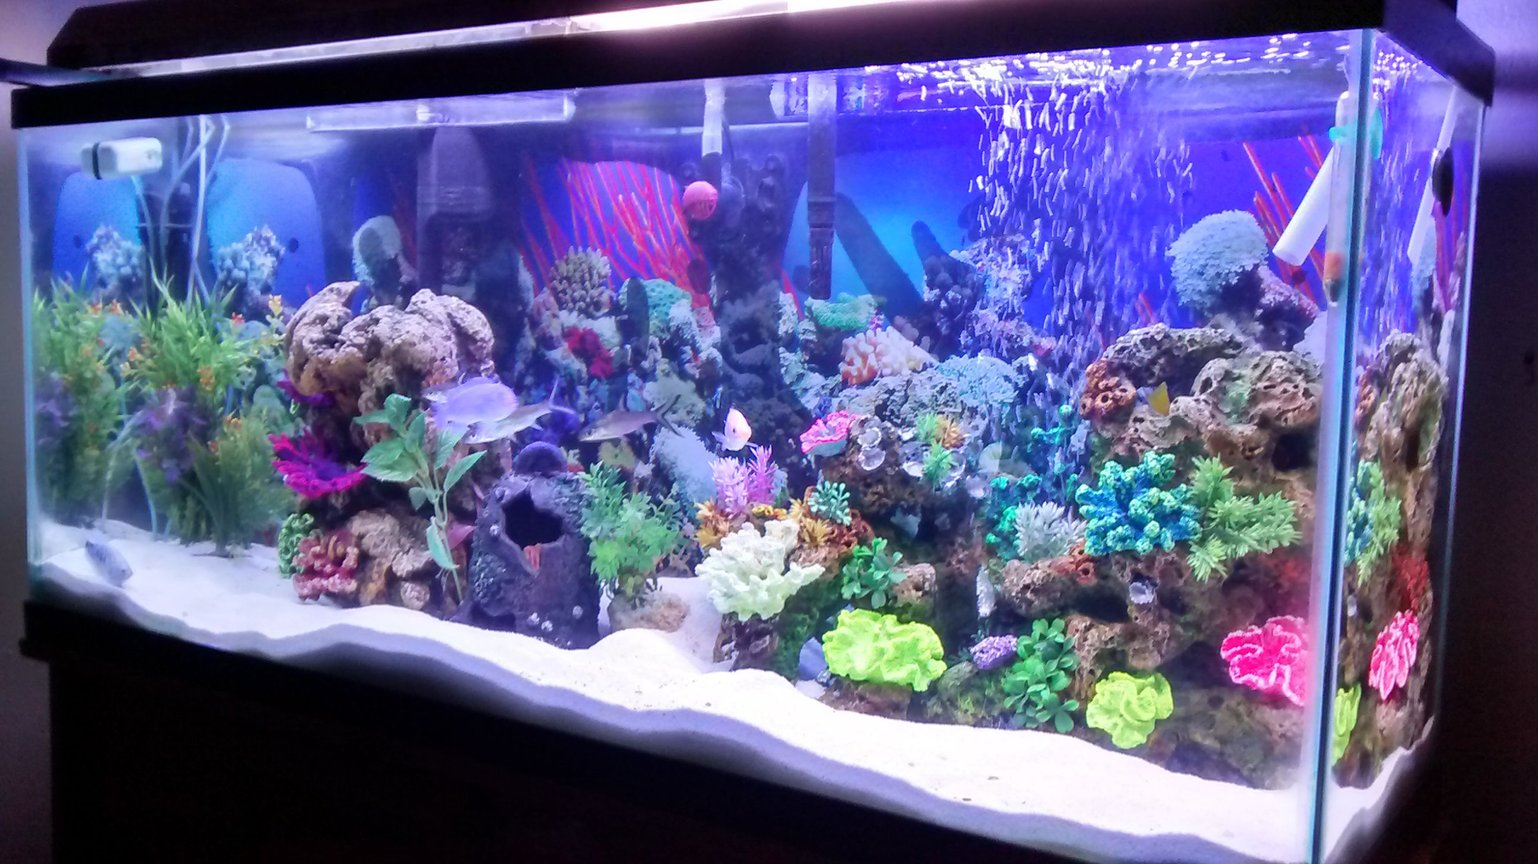 55 gallons freshwater fish tank (mostly fish and non-living decorations) - My first tank ever owned its freshwater despise the salt tank look.